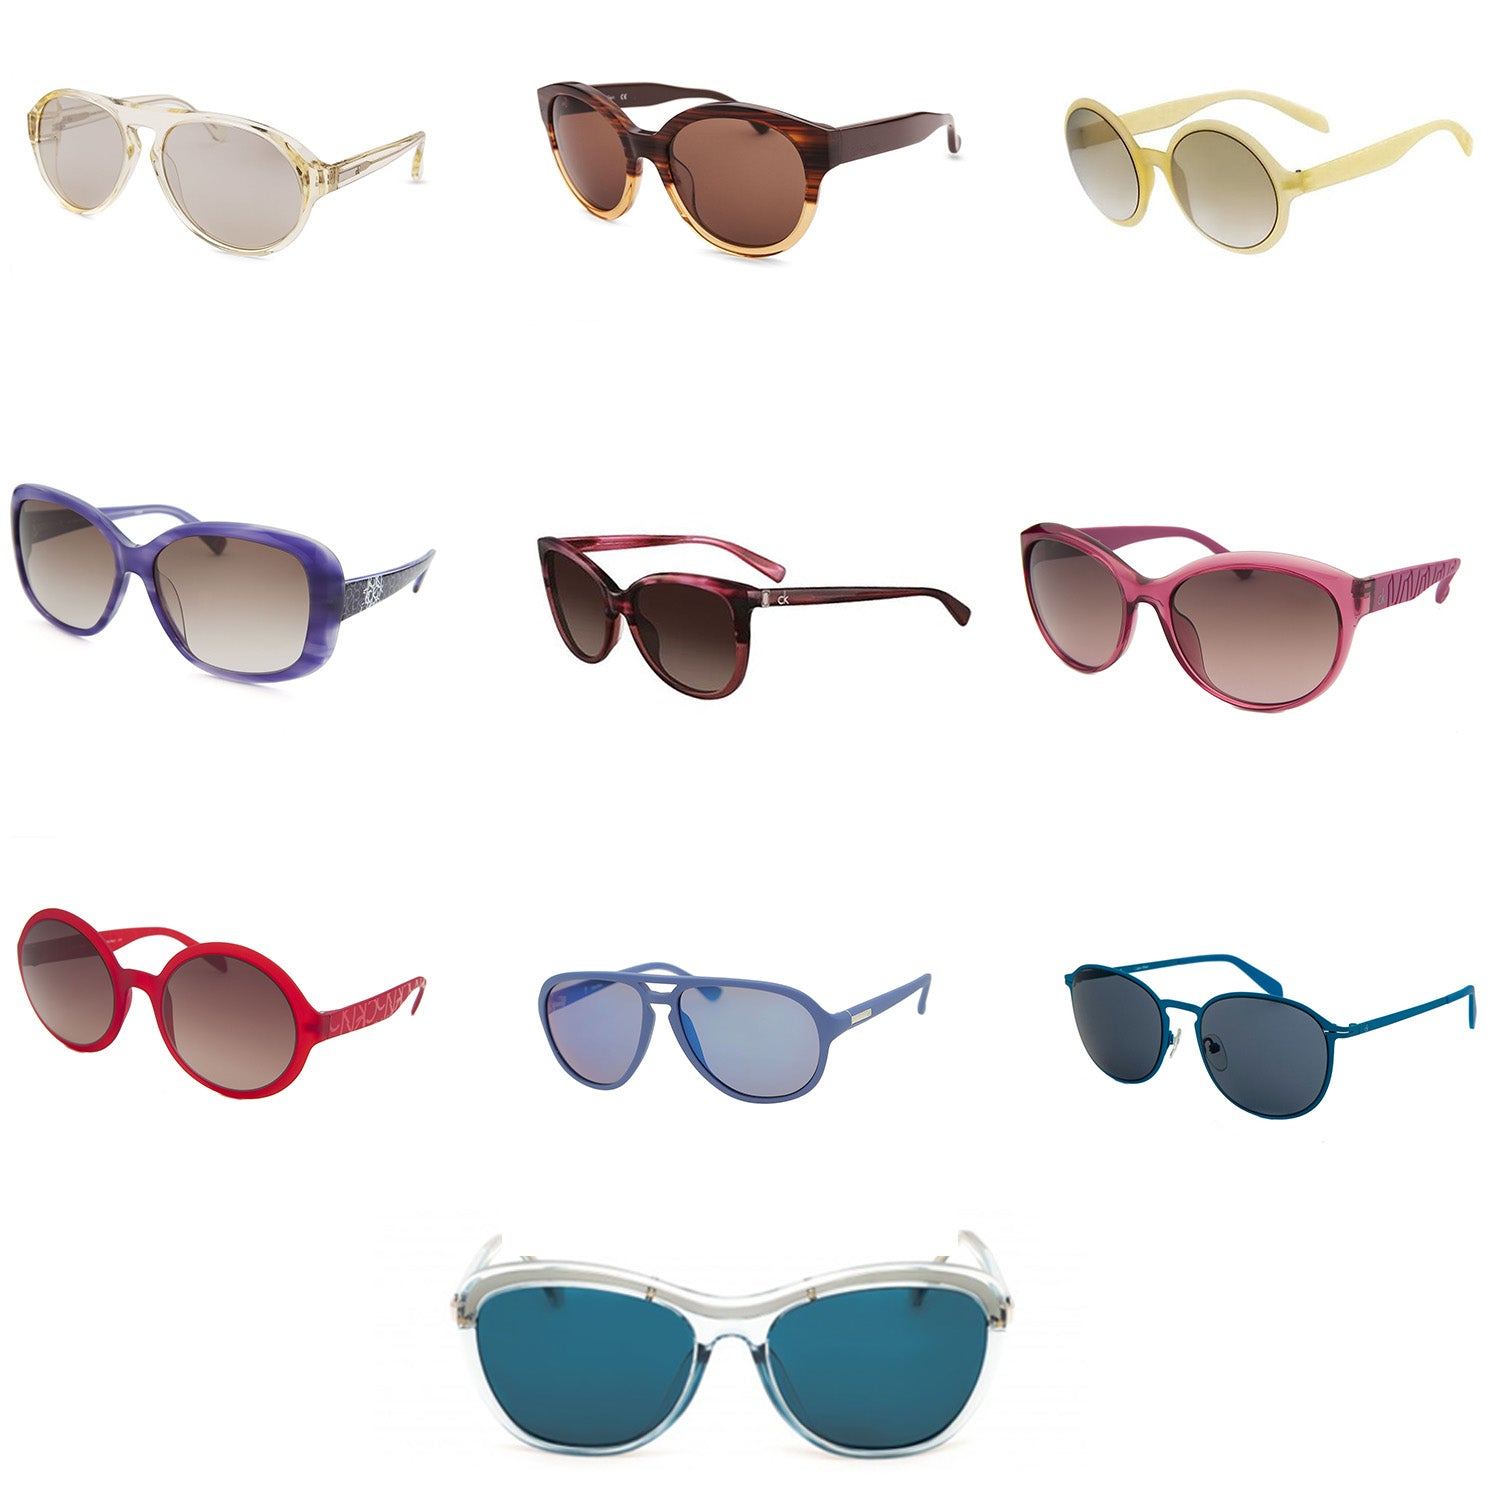 CK Sunglasses - Assorted Styles - 10 pc Lot